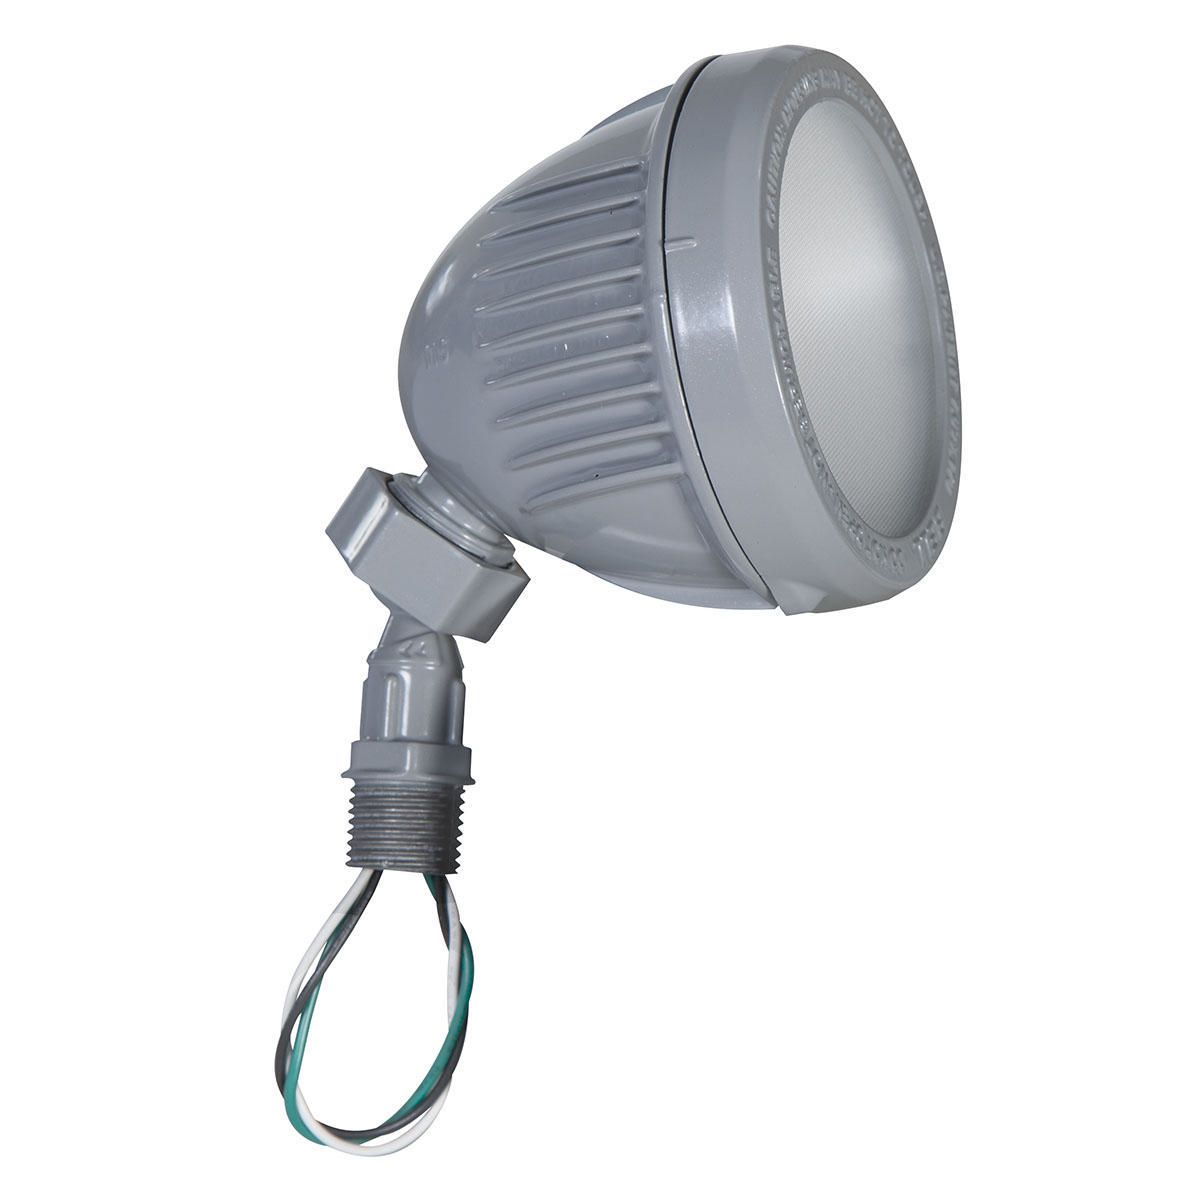 LED SWIVEL FLOODLIGHT 1200 LUMEN GRAY